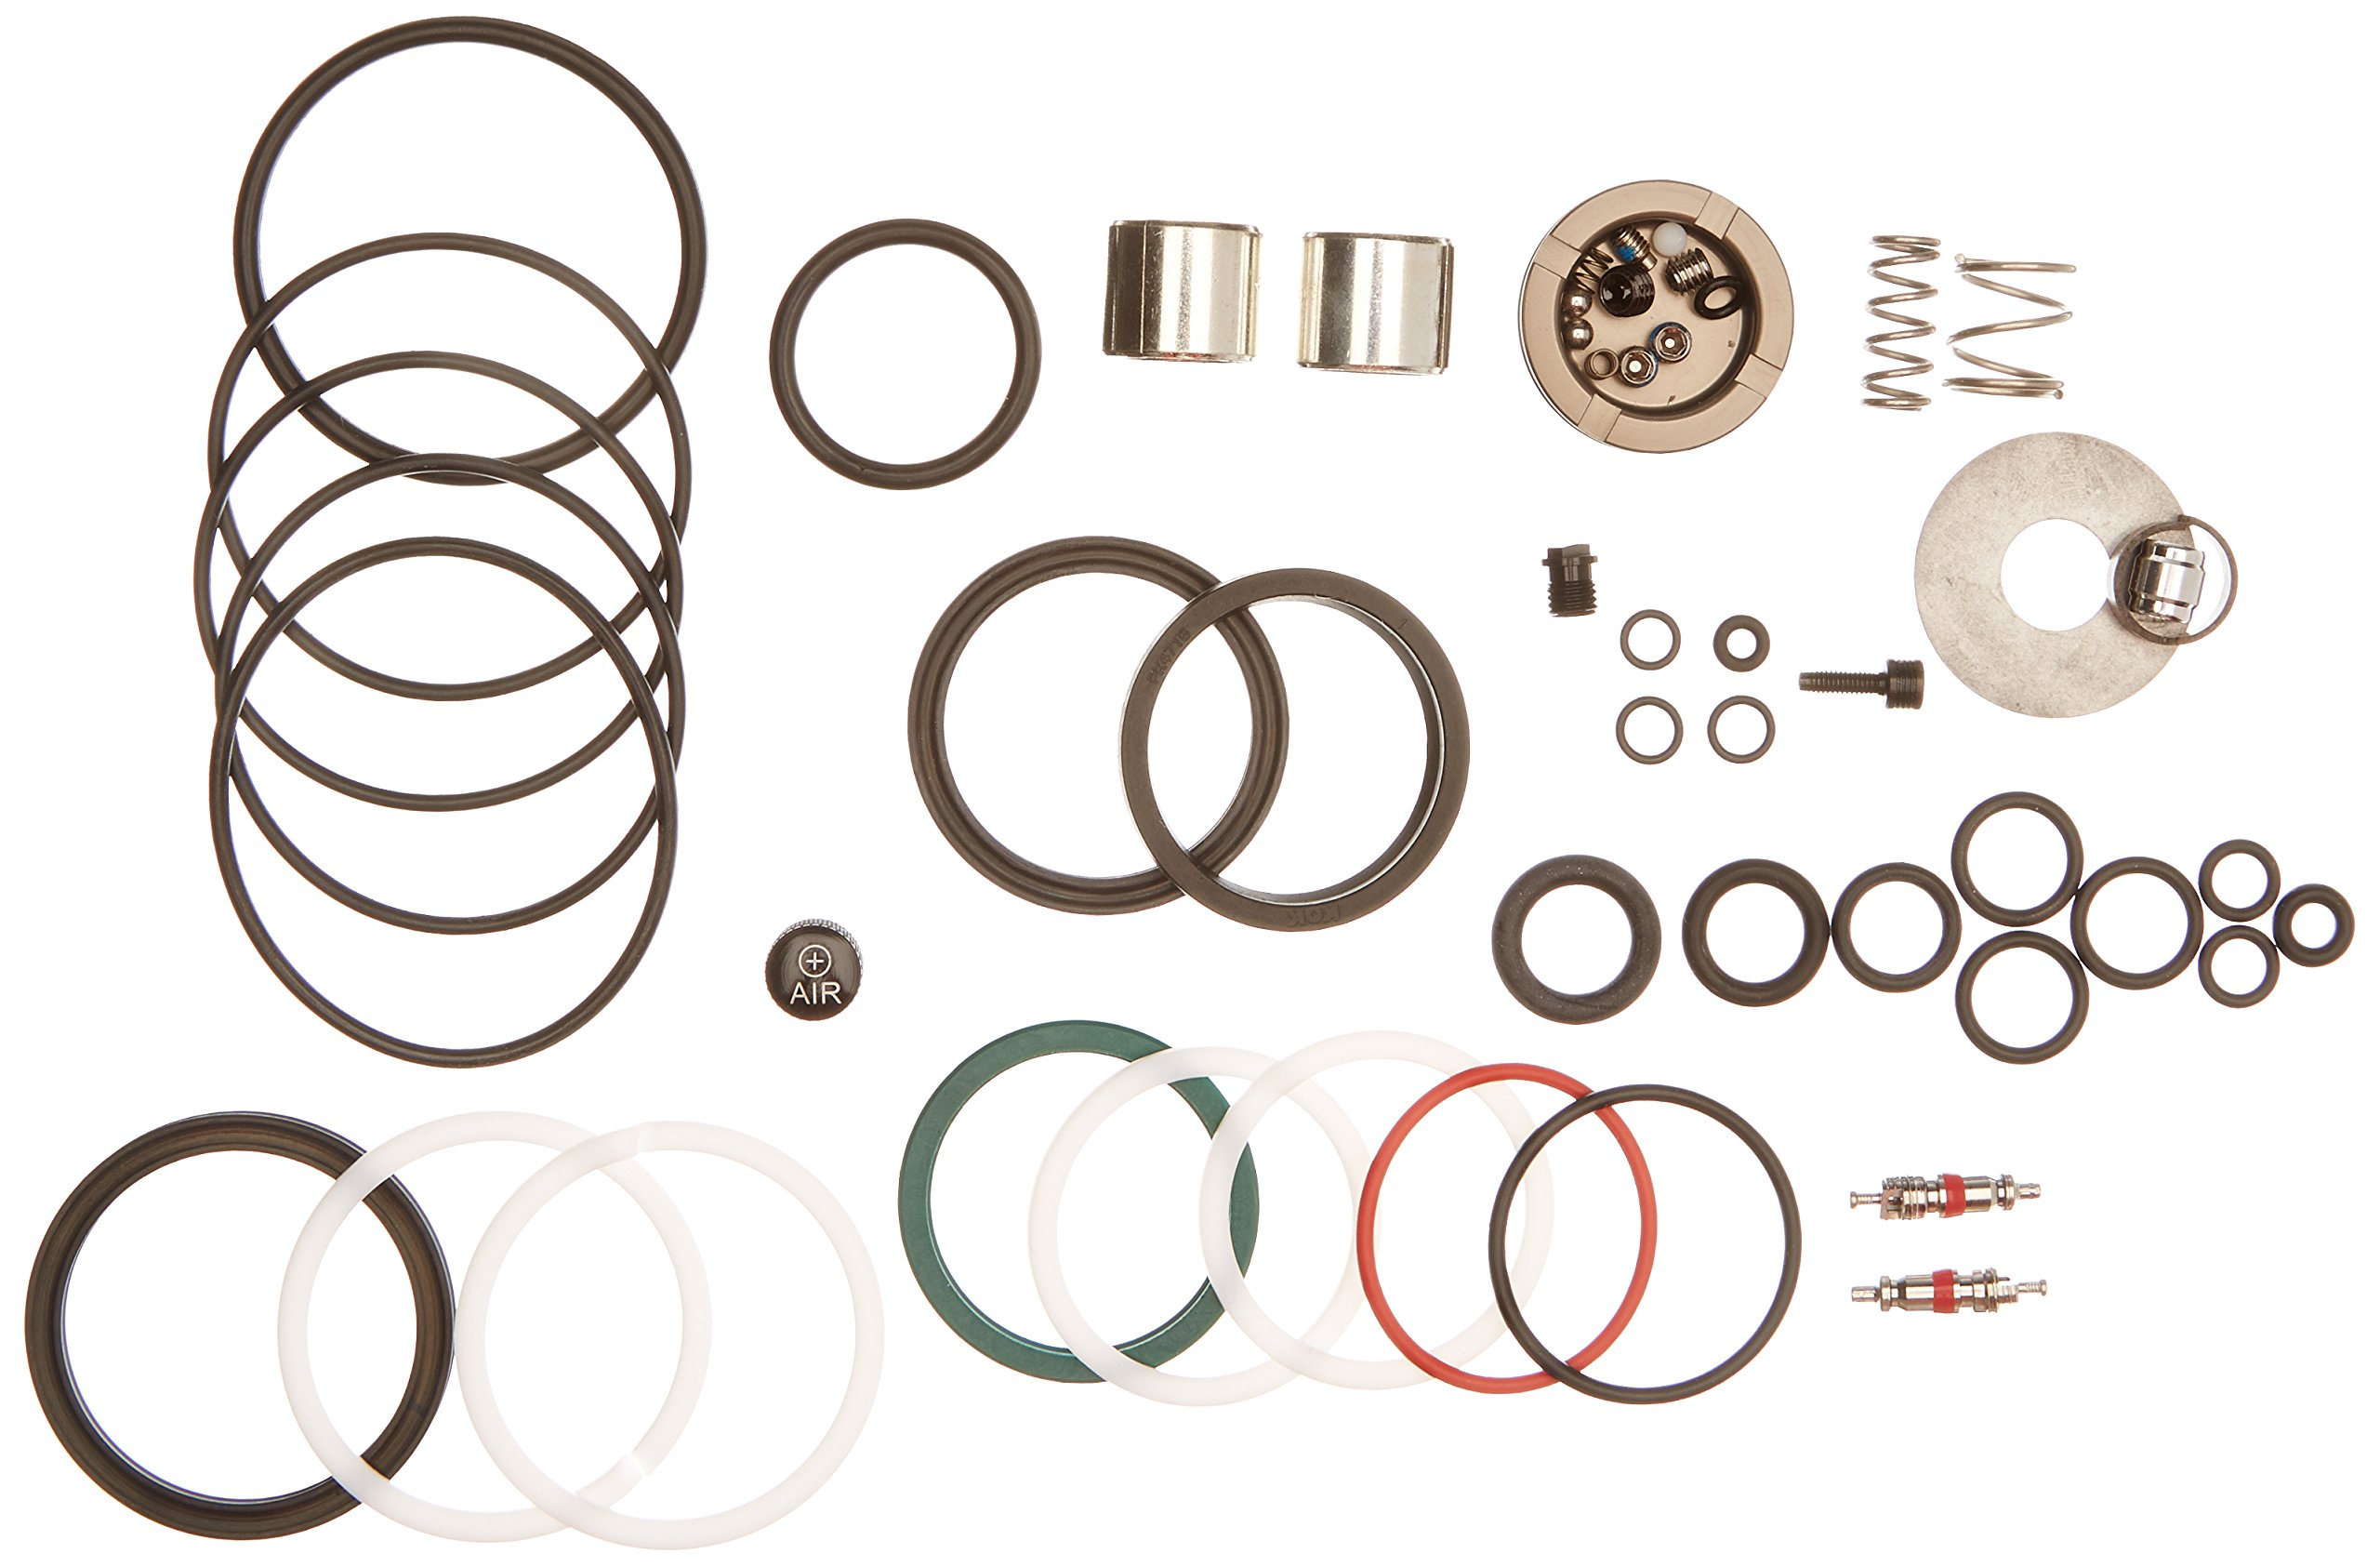 Rockshox Service Kit Monarch Xx B1 2014-2015 (full), 11.4118.038.001